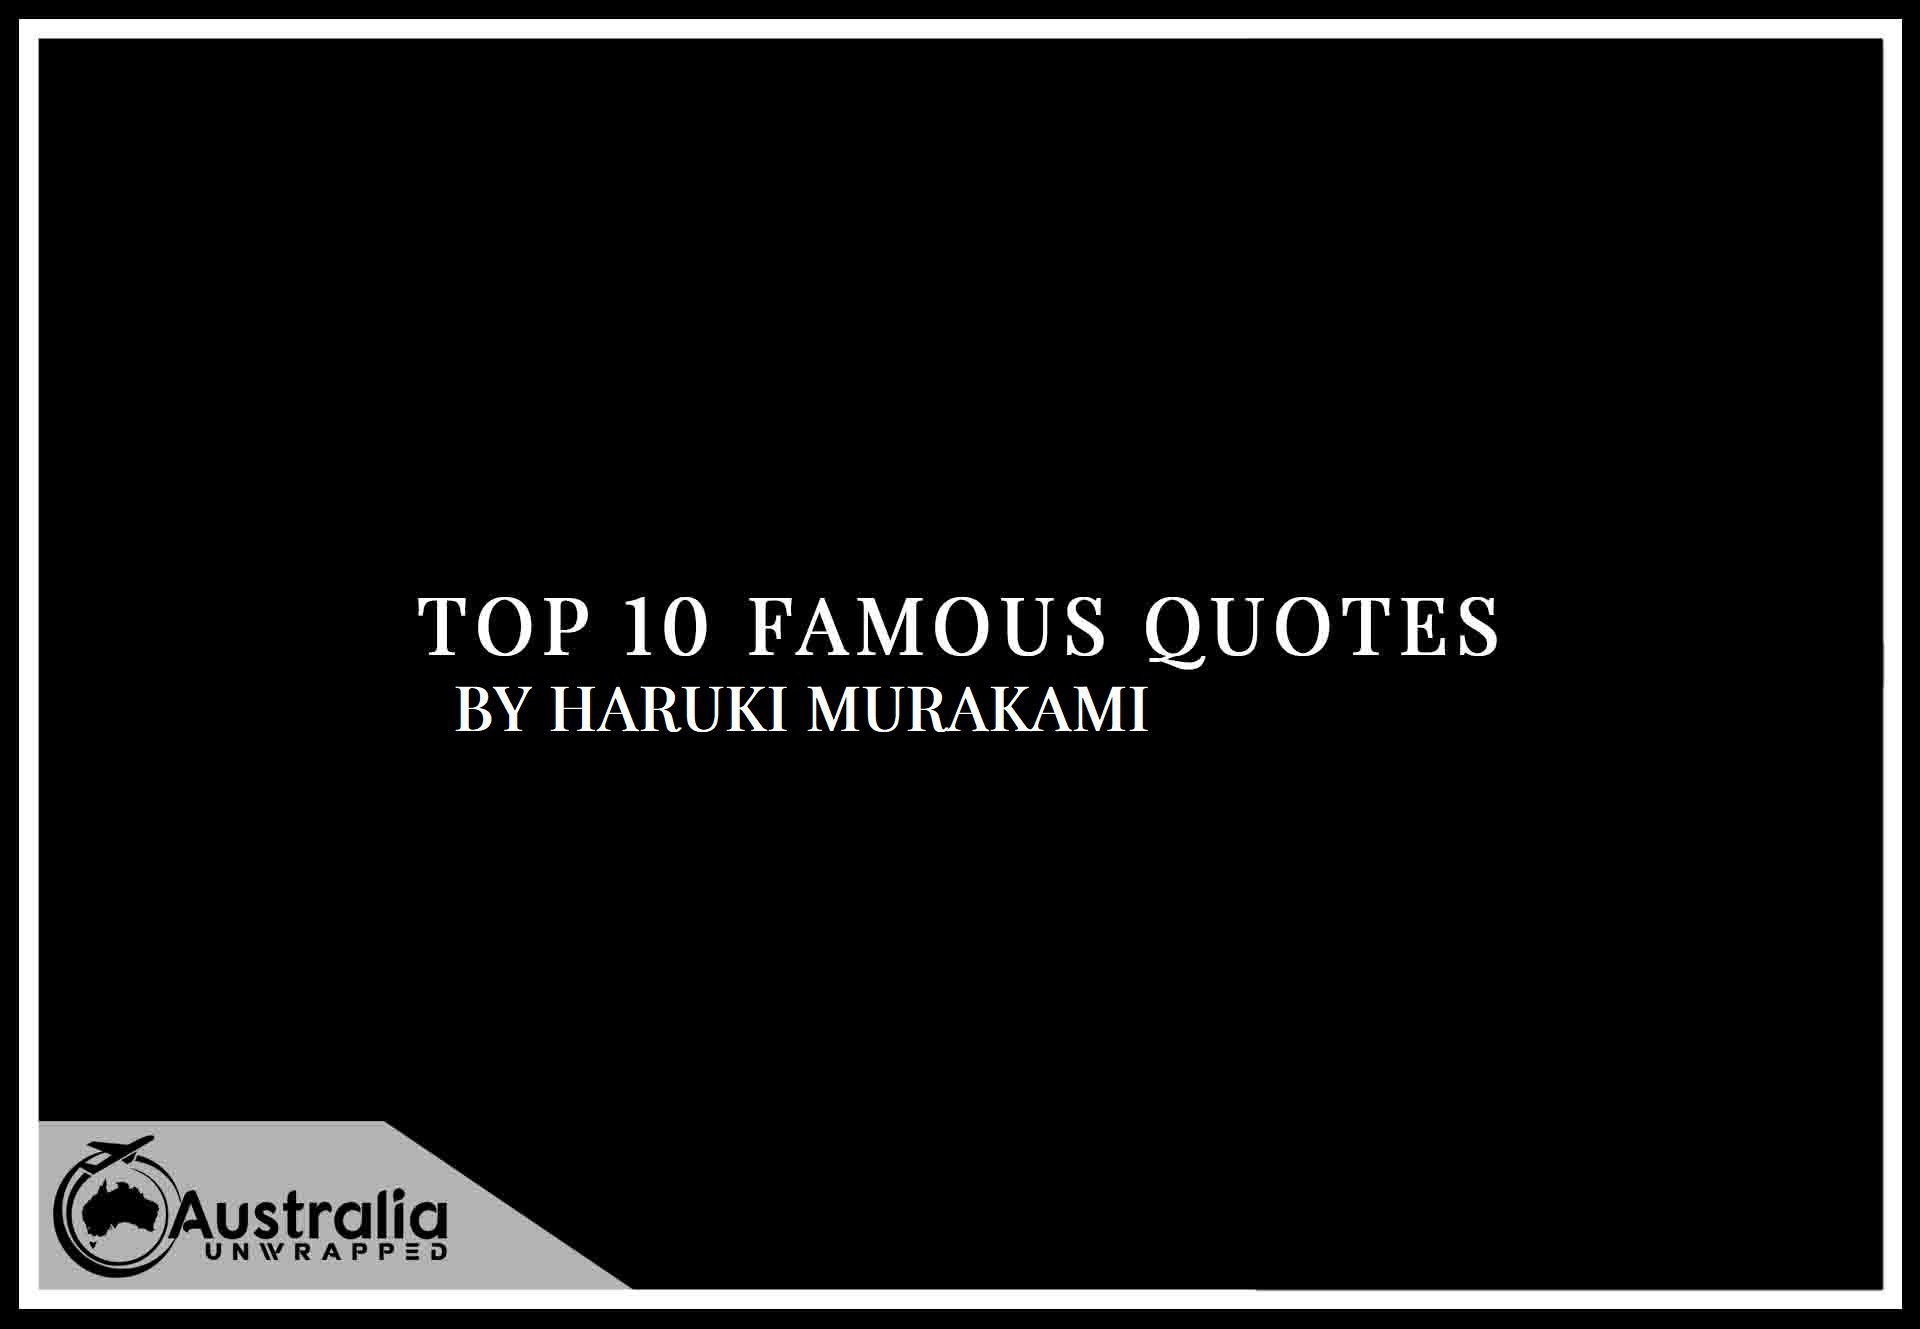 Top 10 Famous Quotes by Author Haruki Murakami